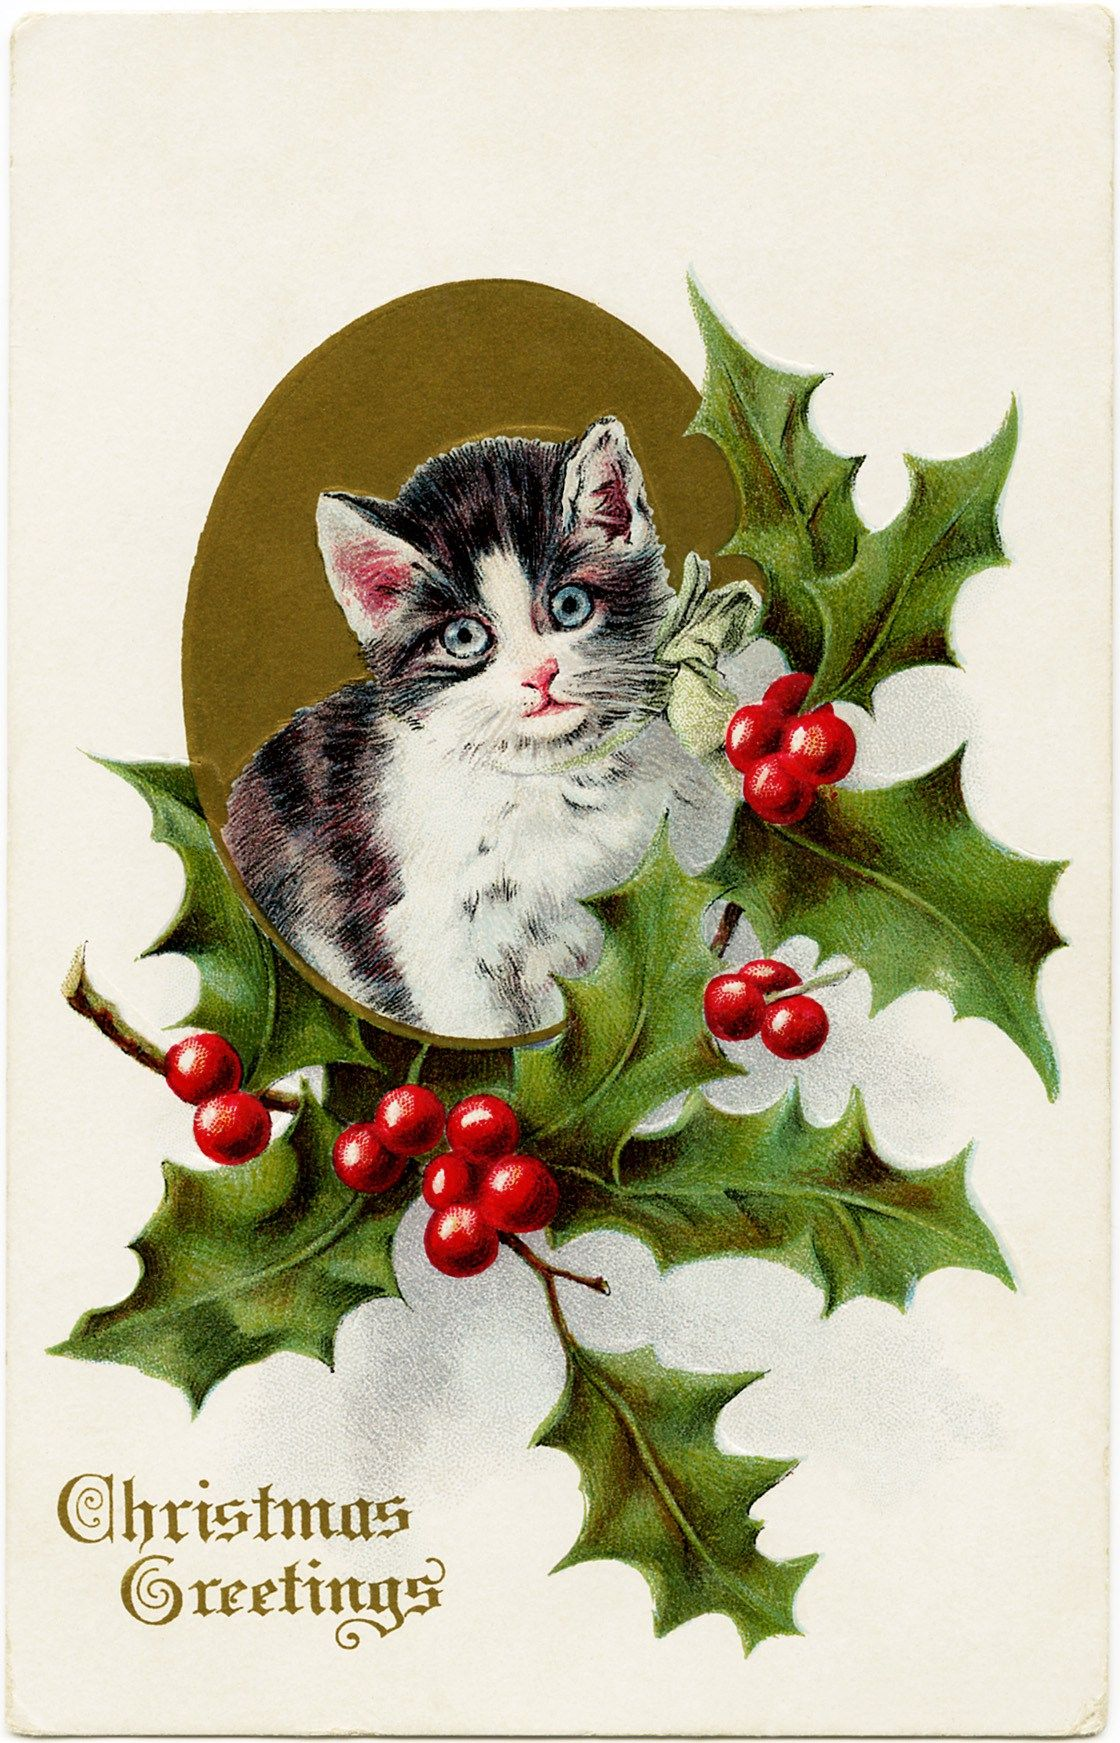 Free Vintage Chrismas Images Yahoo Image Search Results New Year